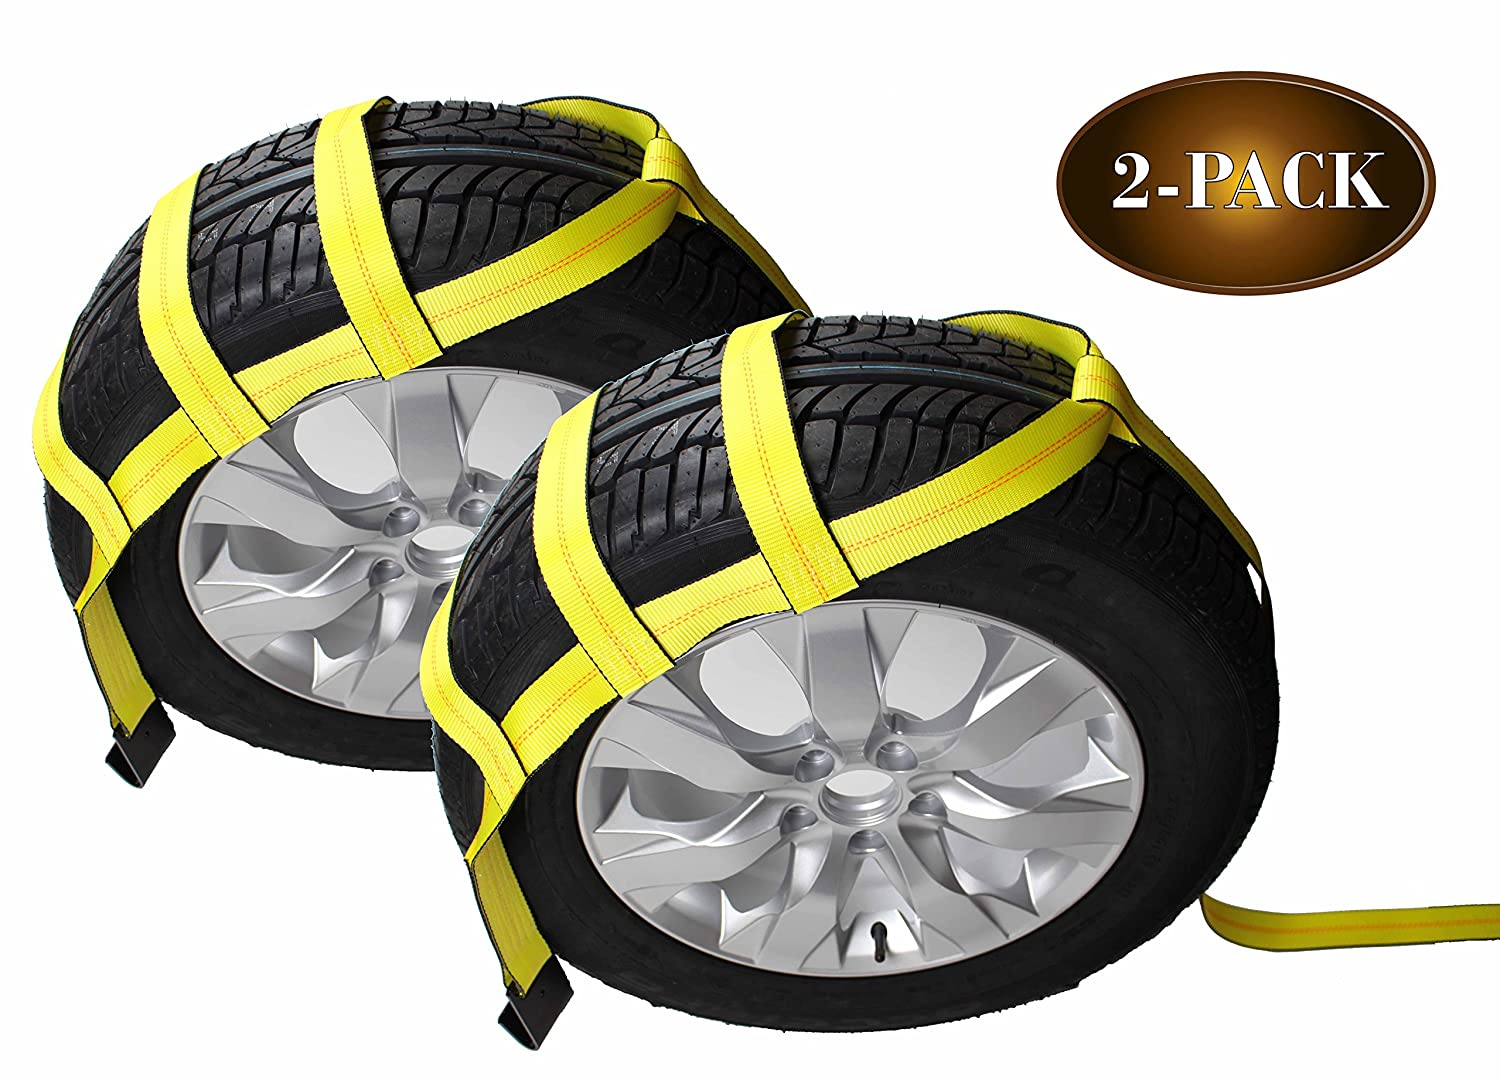 DC Cargo Mall Tow Dolly Basket Straps with Flat Hooks | 2-Pack | Car Wheel Straps for Auto Hauling TDBSFH-2